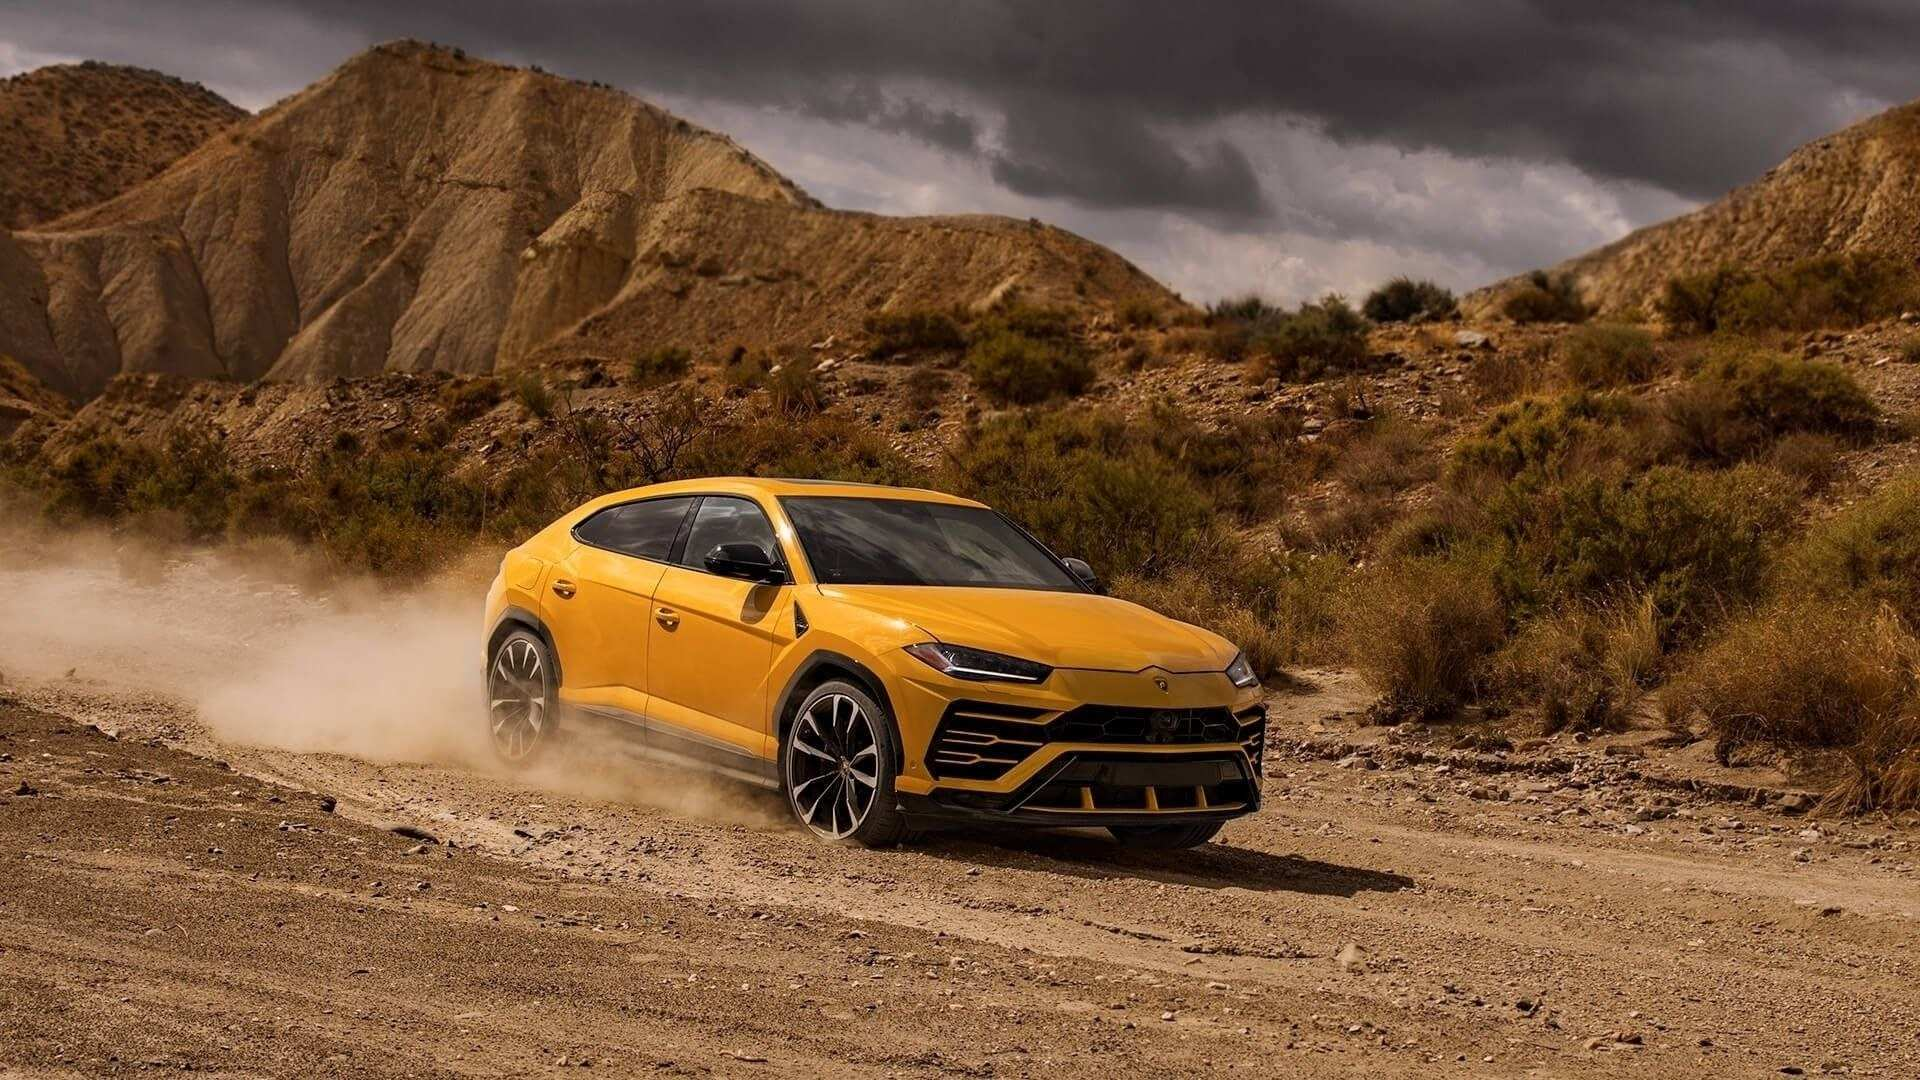 40 New 2020 Renault Megane SUV New Model And Performance